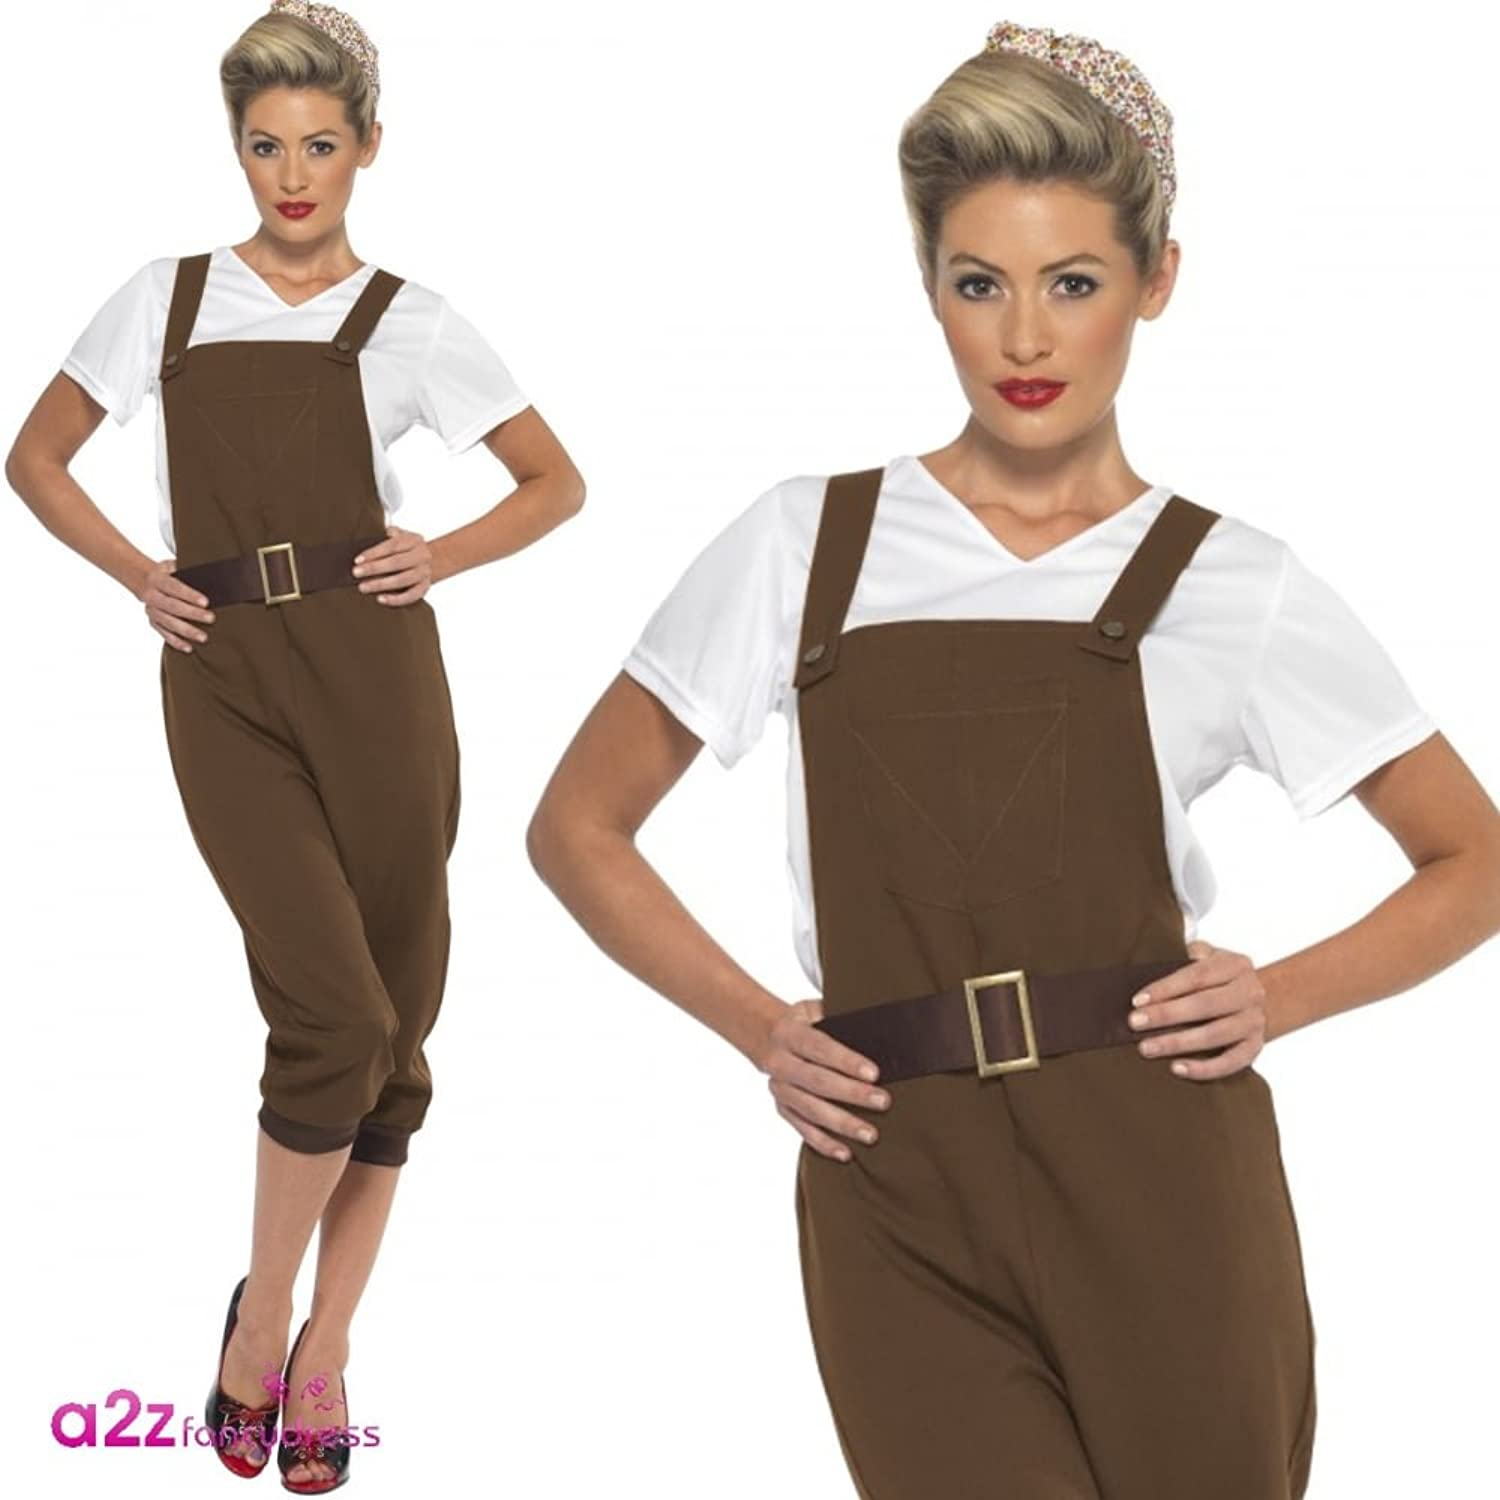 1940s Costumes- WW2, Nurse, Pinup, Rosie the Riveter Smiffys Womens Ww2 Land Girl Costume $38.15 AT vintagedancer.com